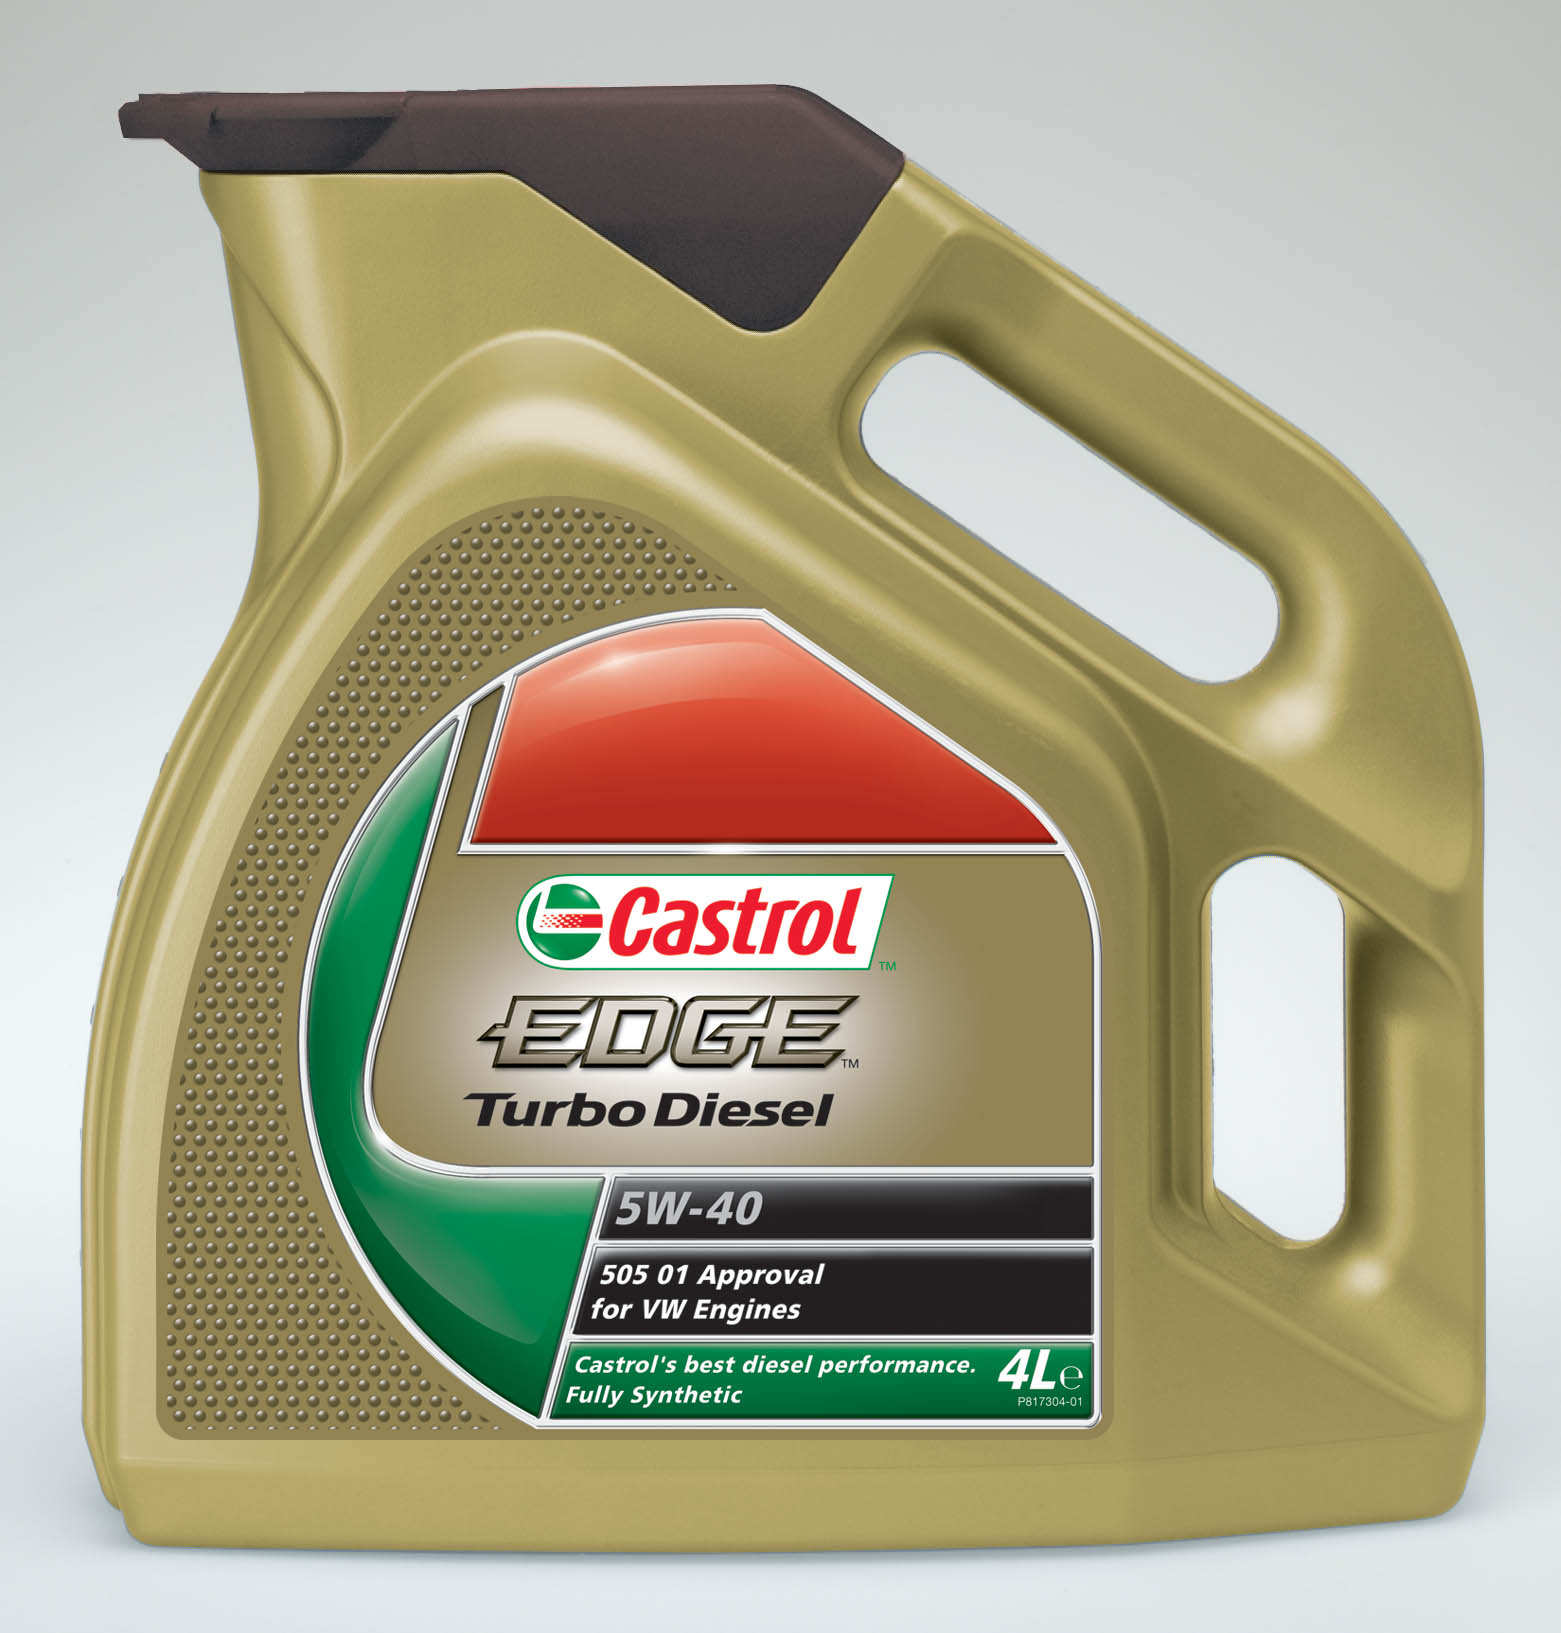 castrol edge 5w40 turbo diesel fully synthetic engine. Black Bedroom Furniture Sets. Home Design Ideas